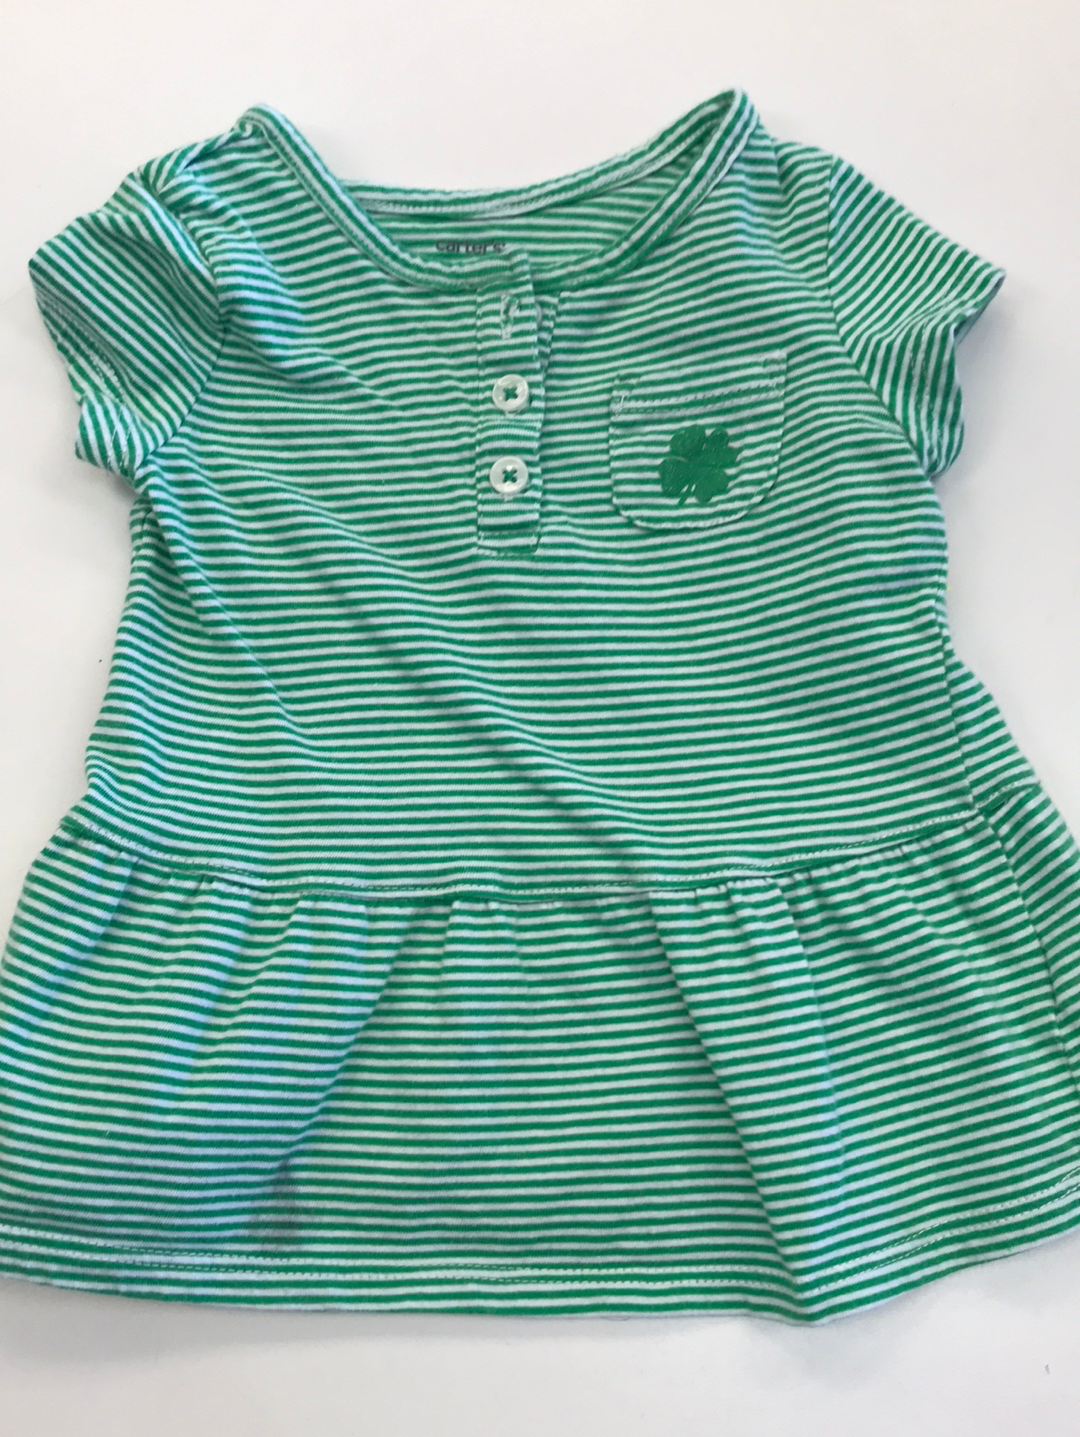 Girls Short Sleeve Shirt St Patrick's Day 9 months Circo